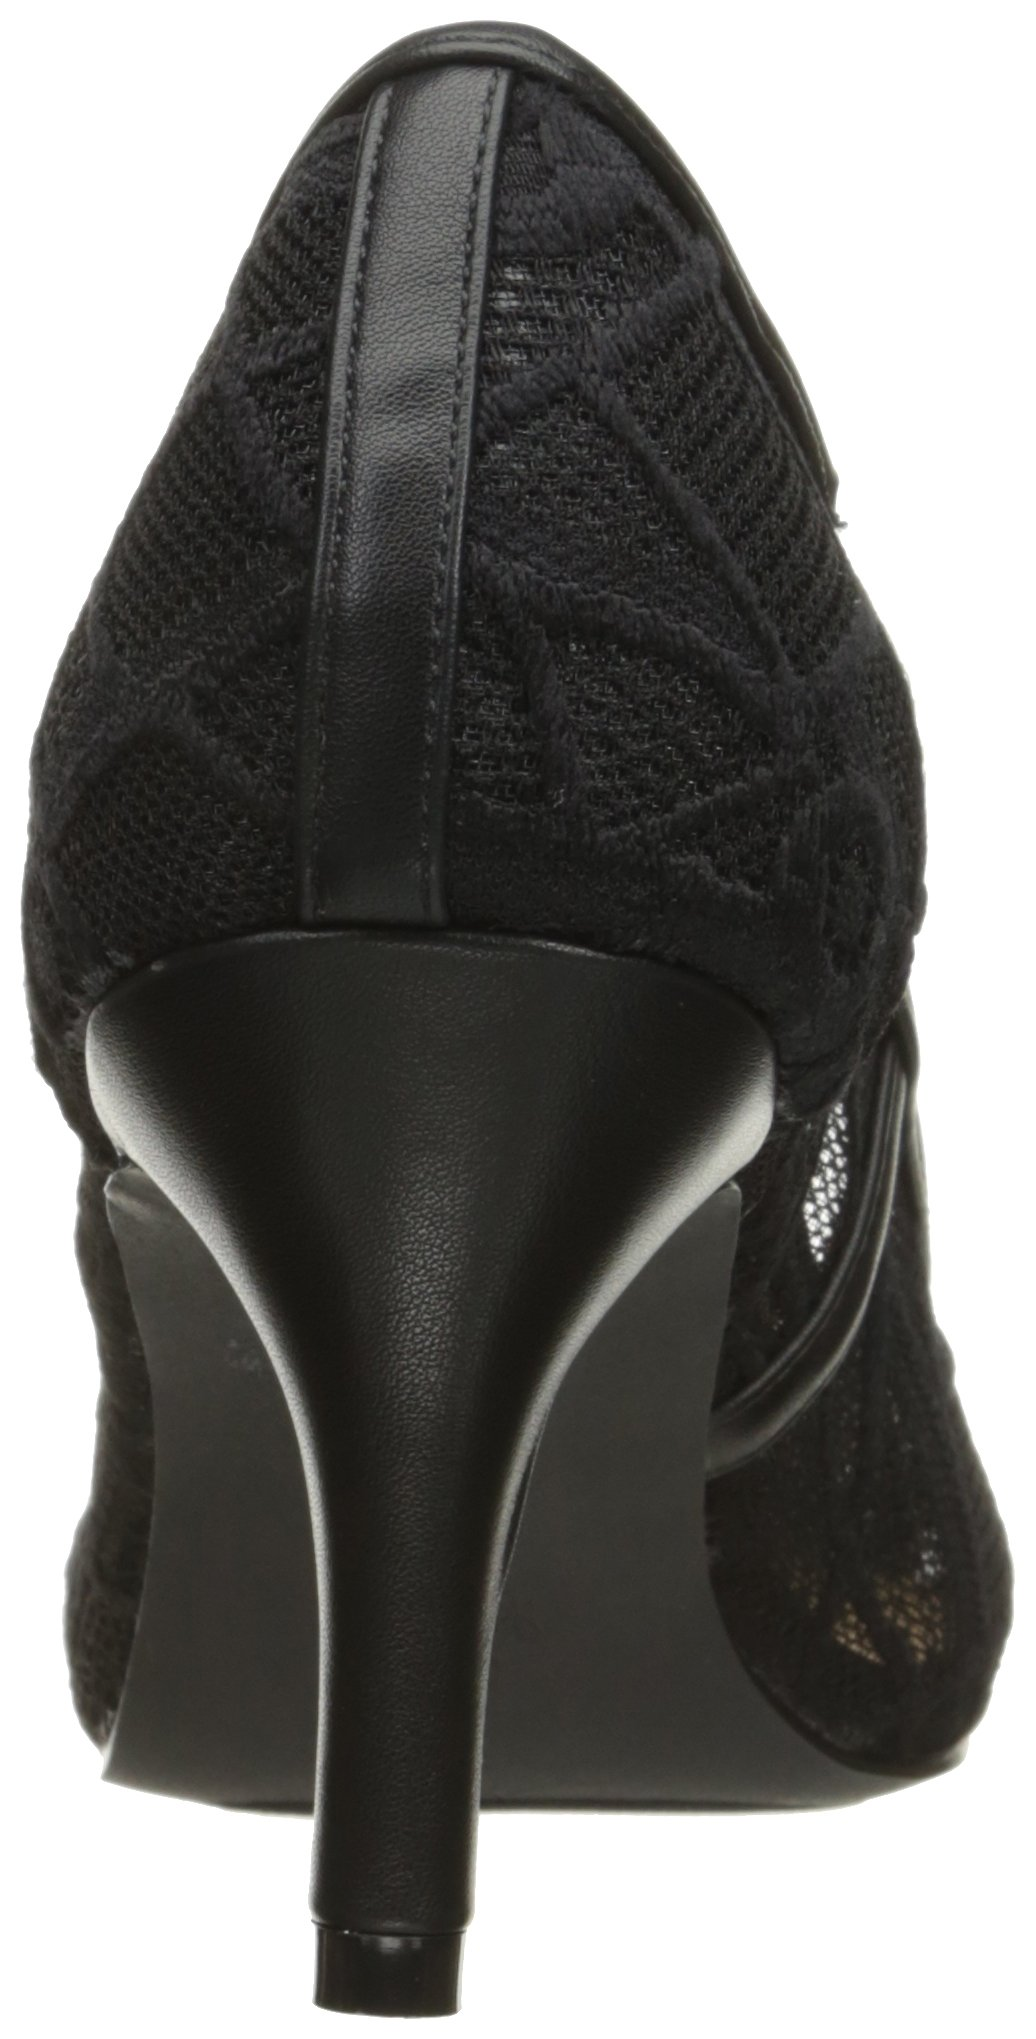 Penny Loves Kenny Women's Union Dress Pump, Black, 7.5 M US by Penny Loves Kenny (Image #2)